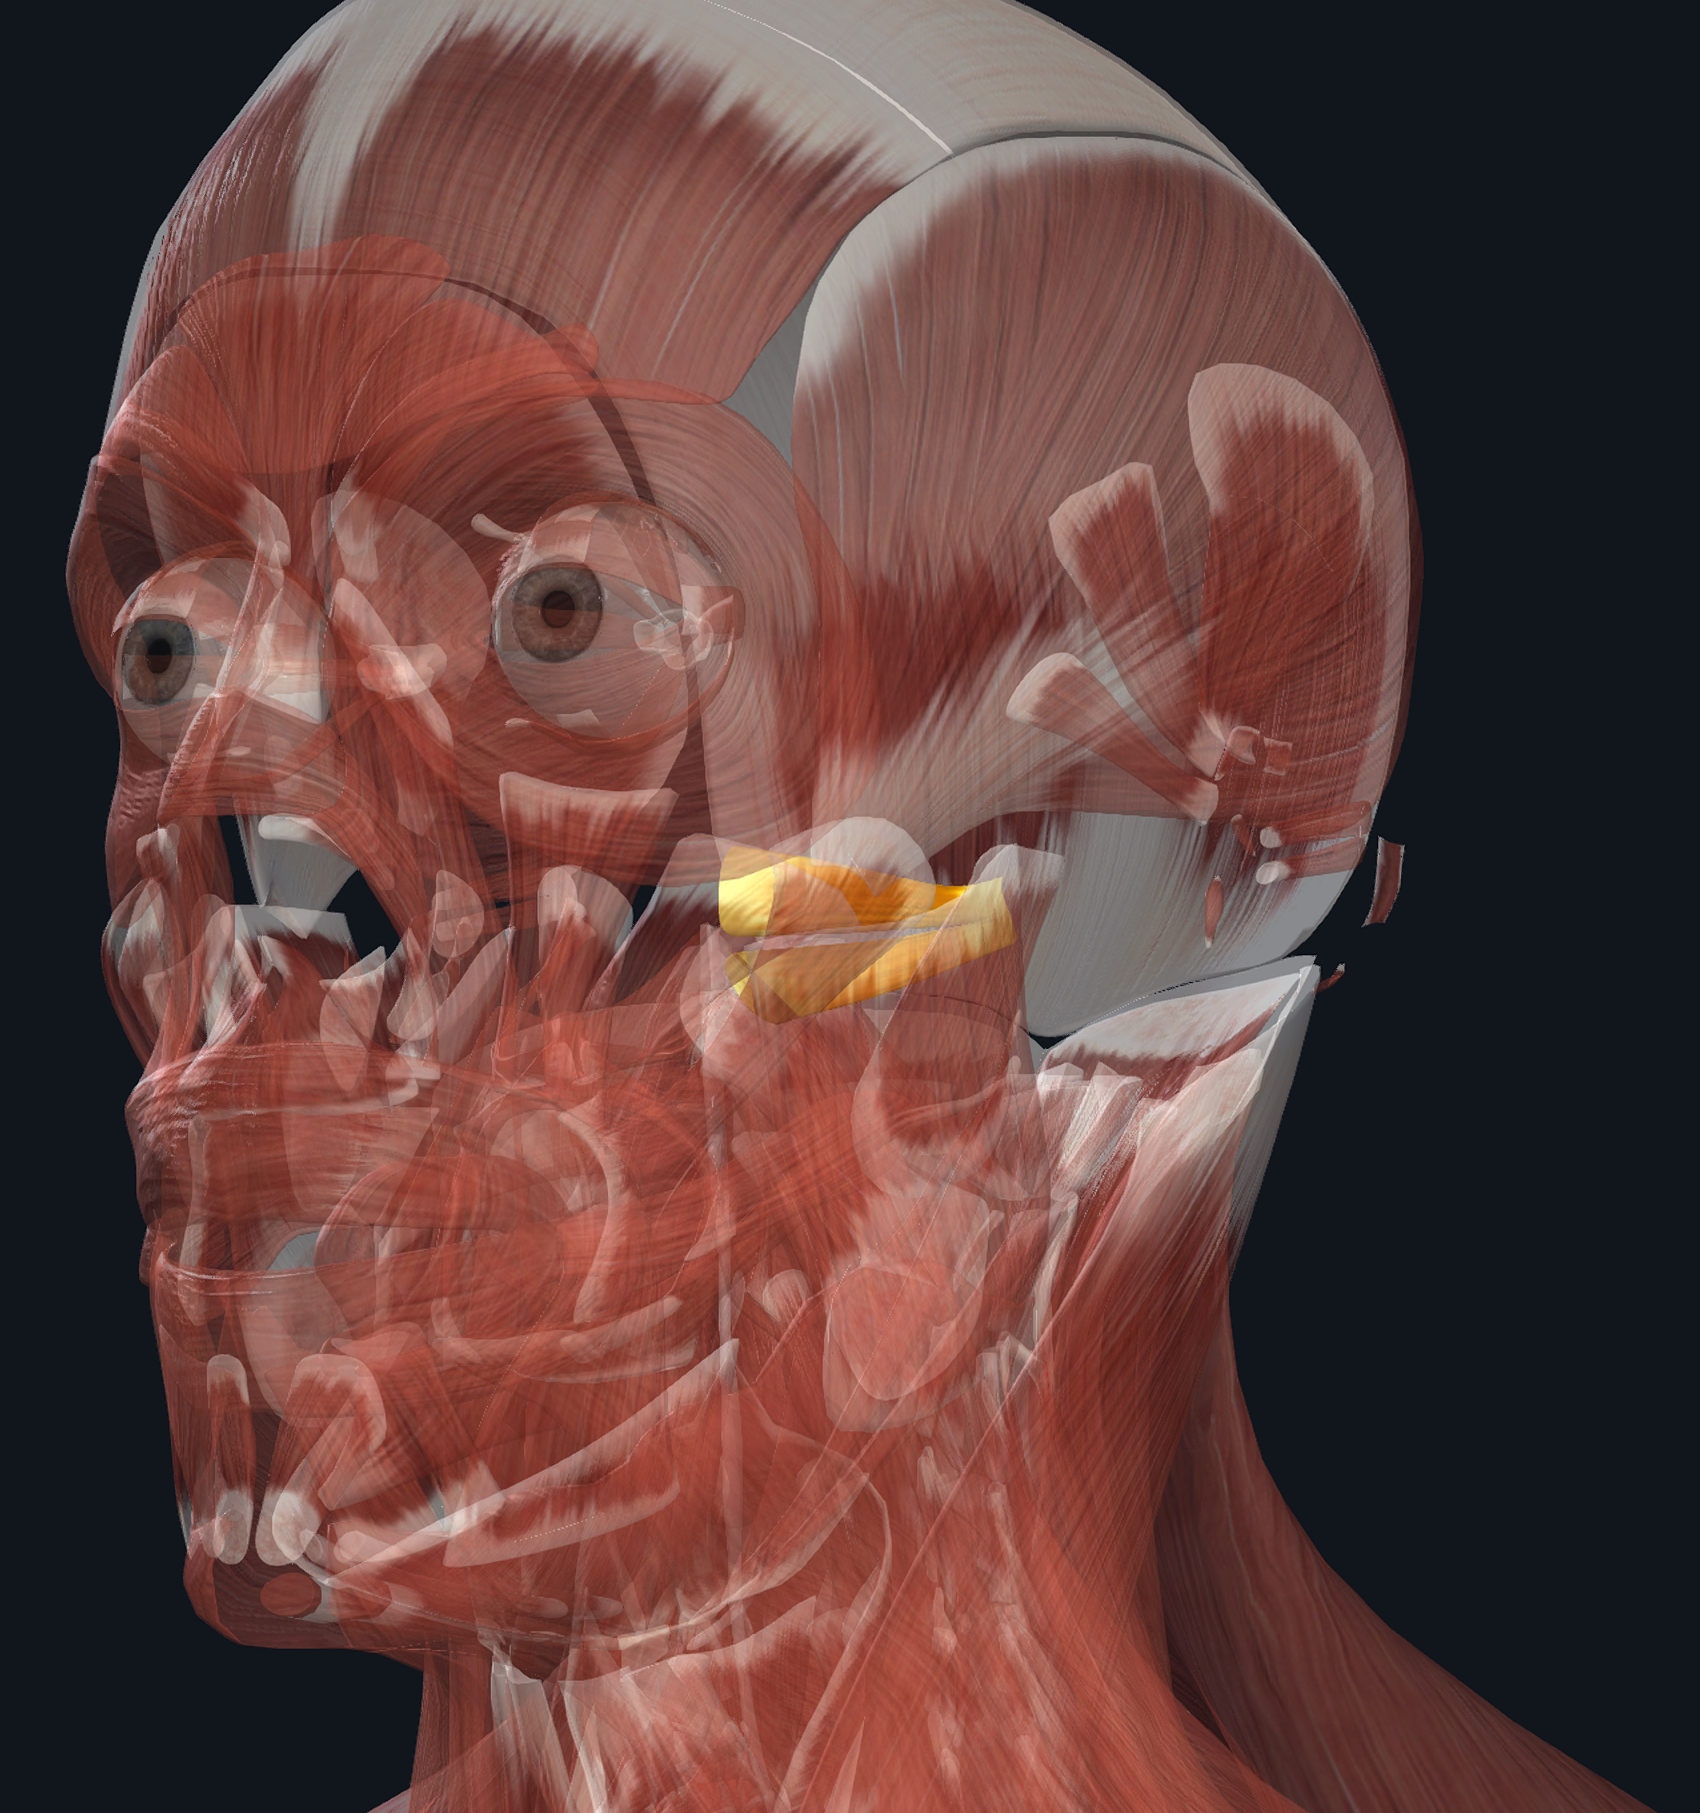 In Orange: Lateral Pterygoid Muscle